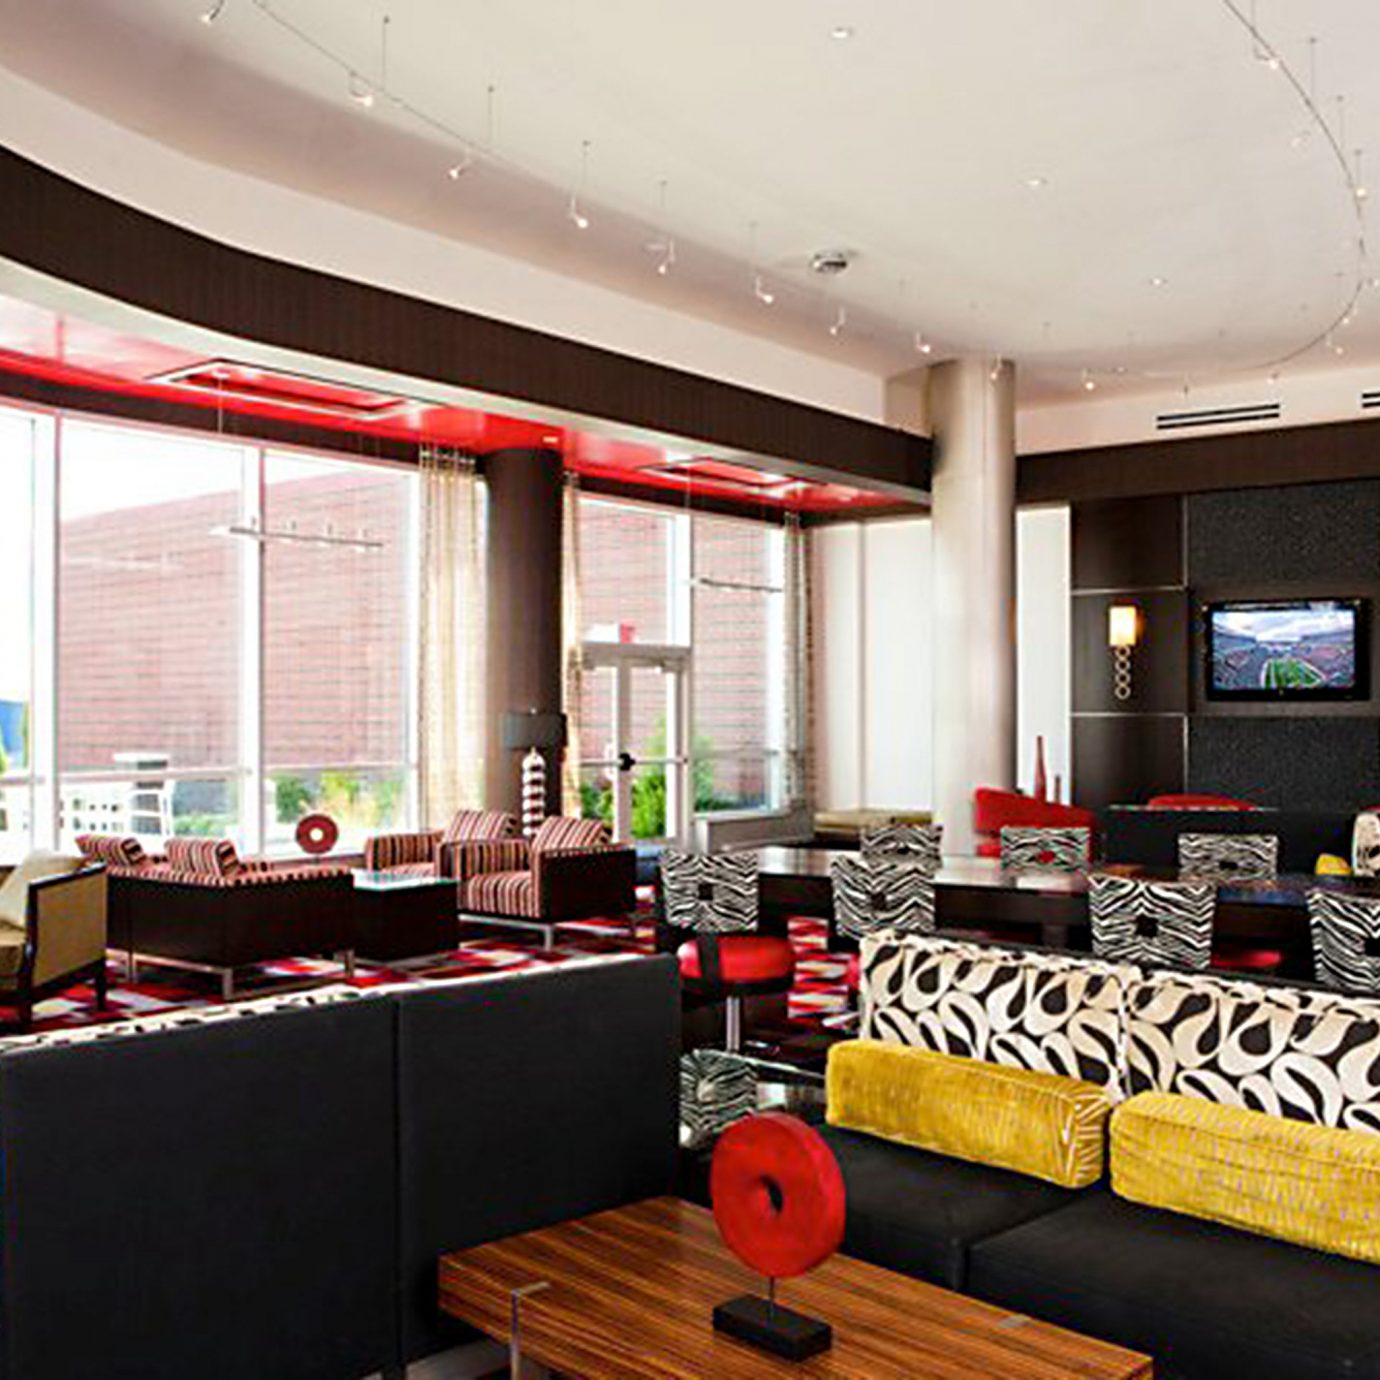 conference hall Lobby restaurant function hall living room auditorium